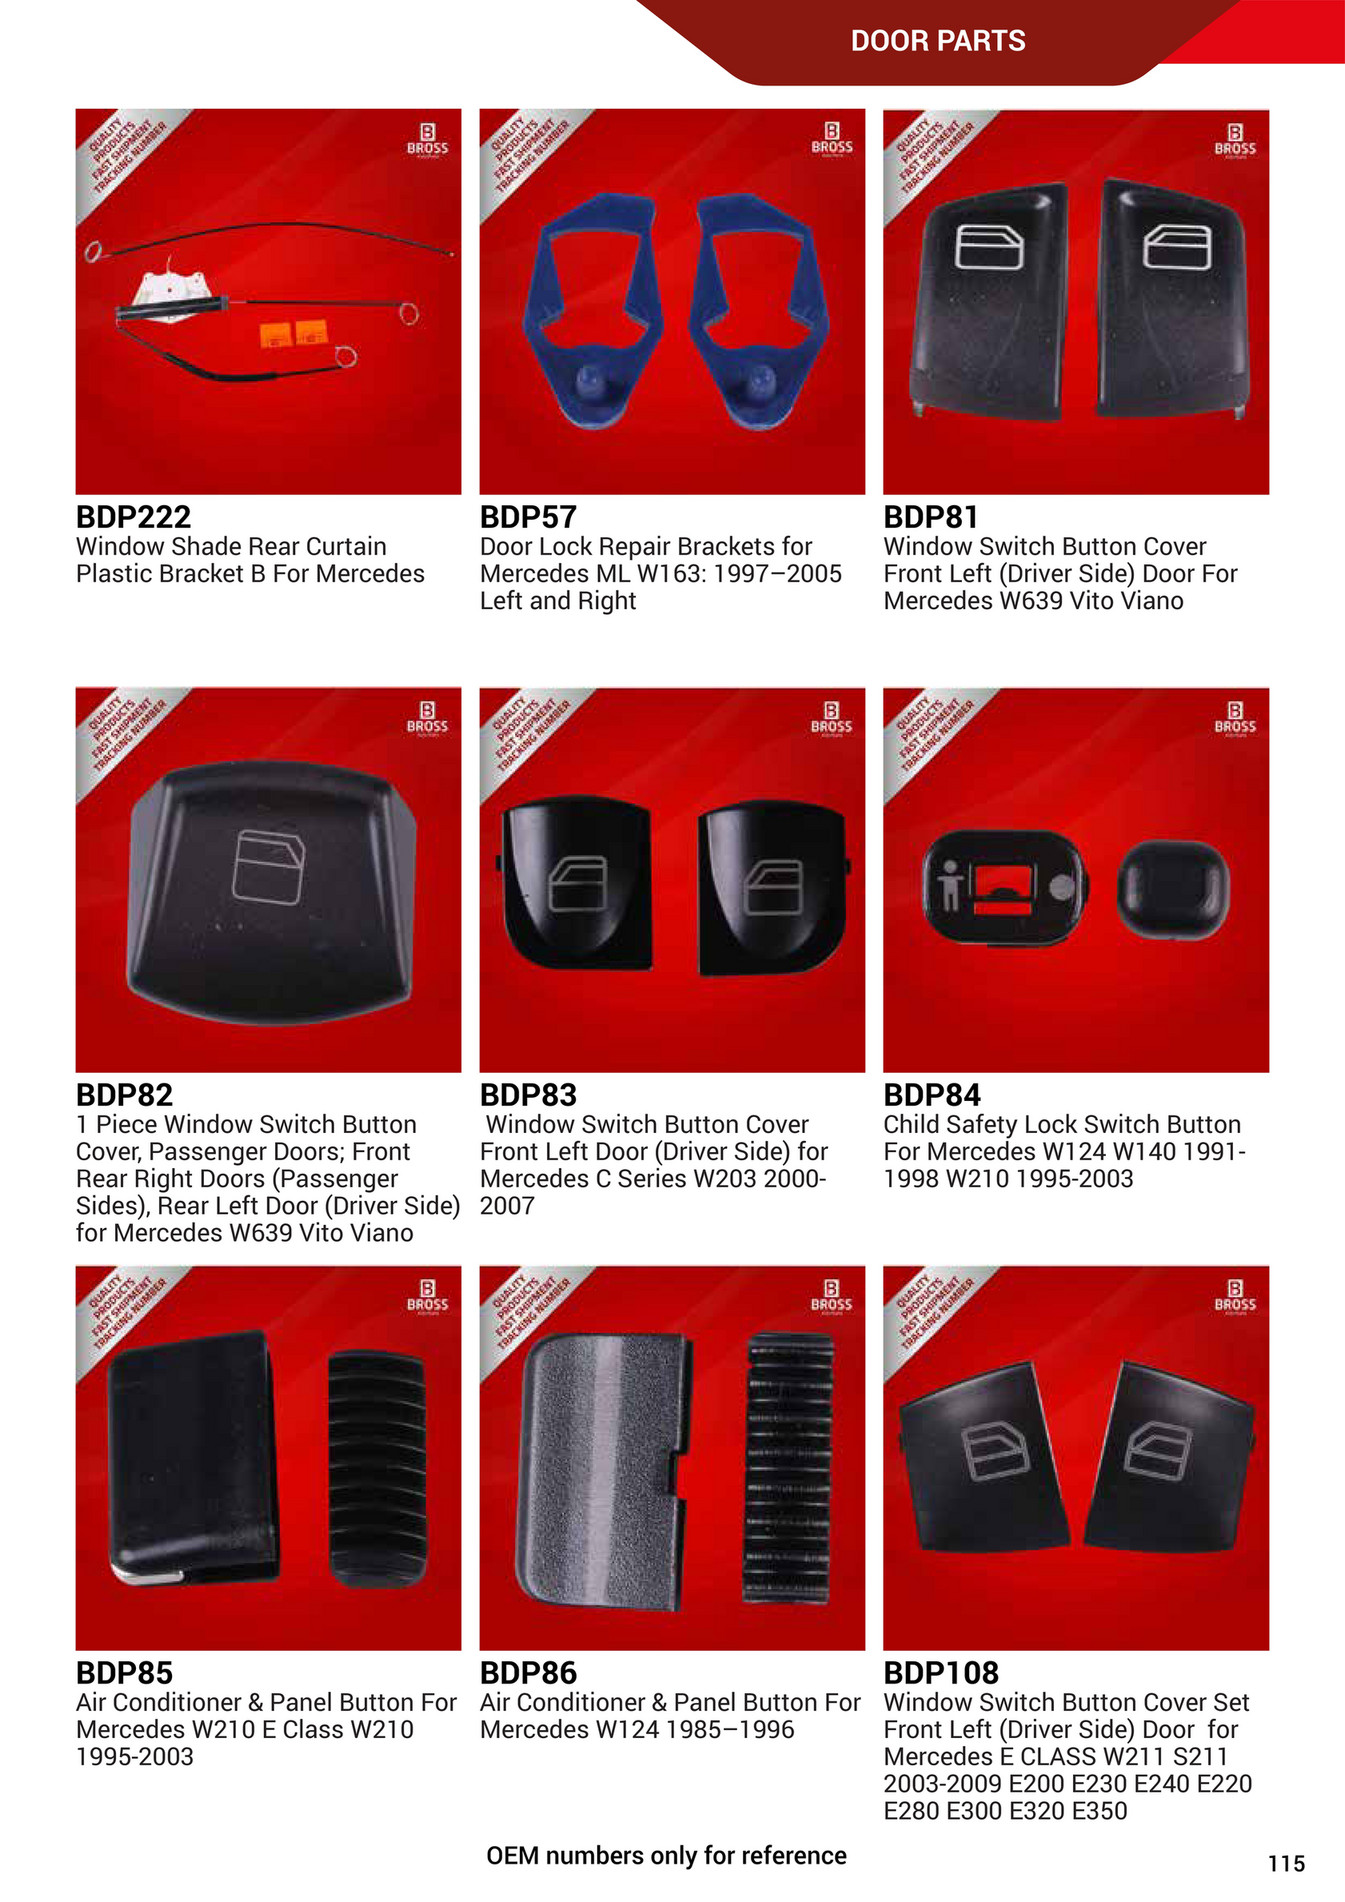 Bross Auto Parts - Bross_Auto_Parts_Supply_Catalogue - Page